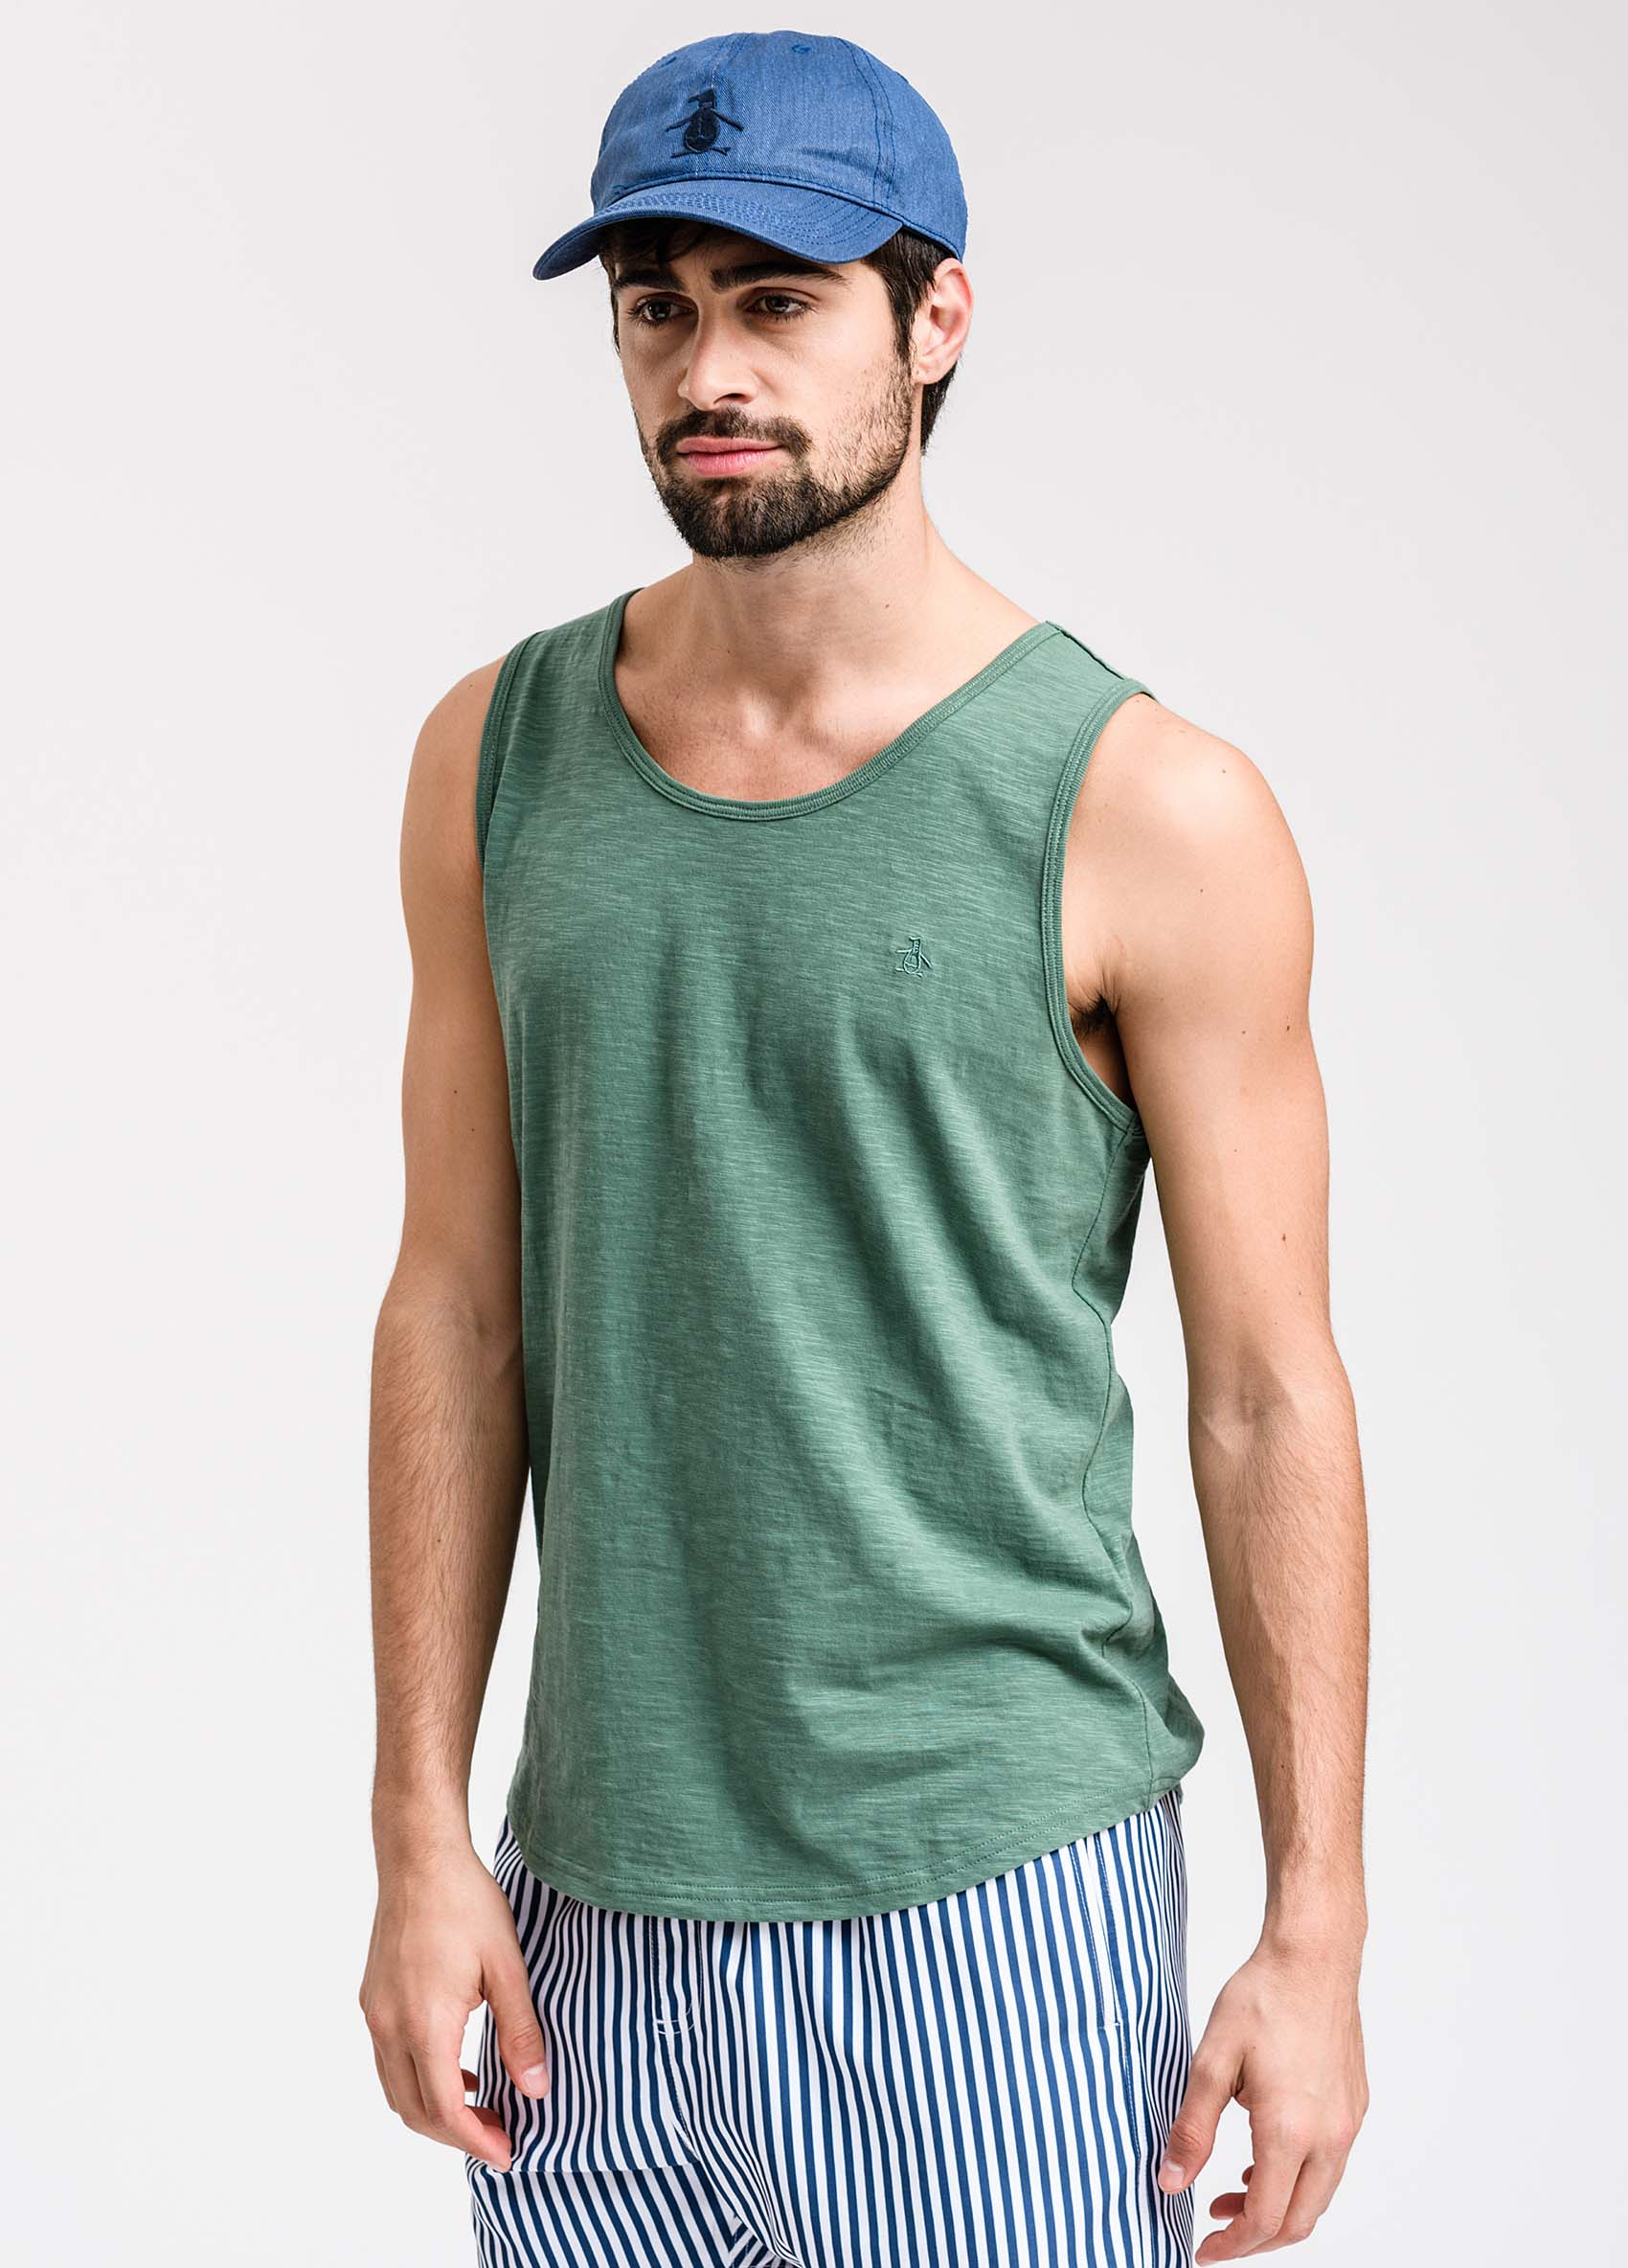 penguin_musculosa-flame-washed-tank_37-27-2020__picture-1912